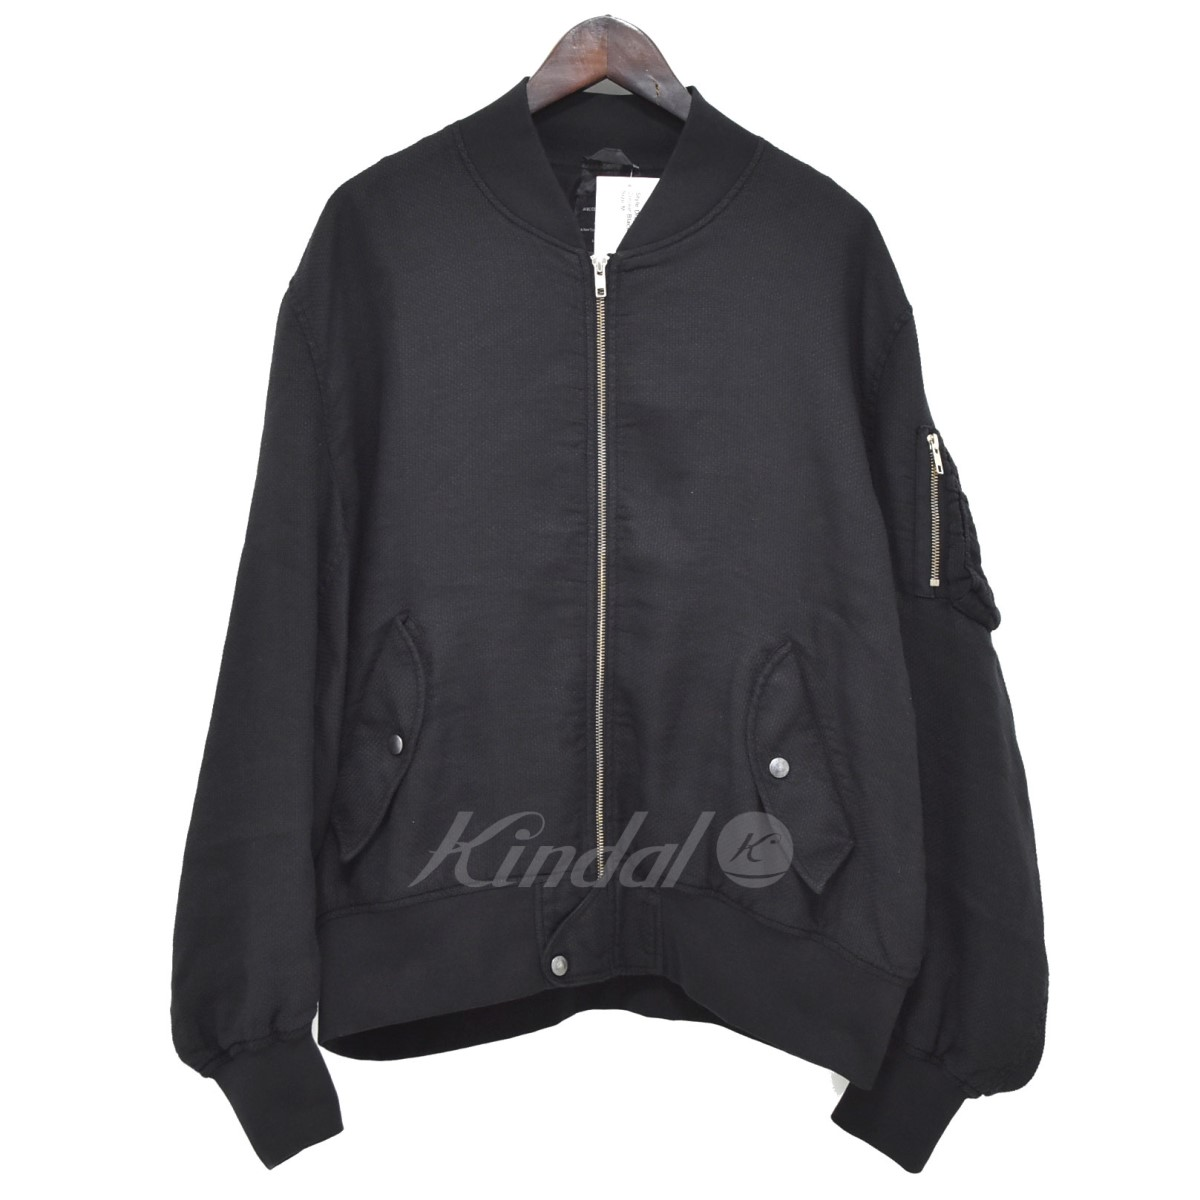 【中古】ART COMES FIRST DYED BOMBER JACKET ボンバージャケット 【送料無料】 【281860】 【KIND1550】